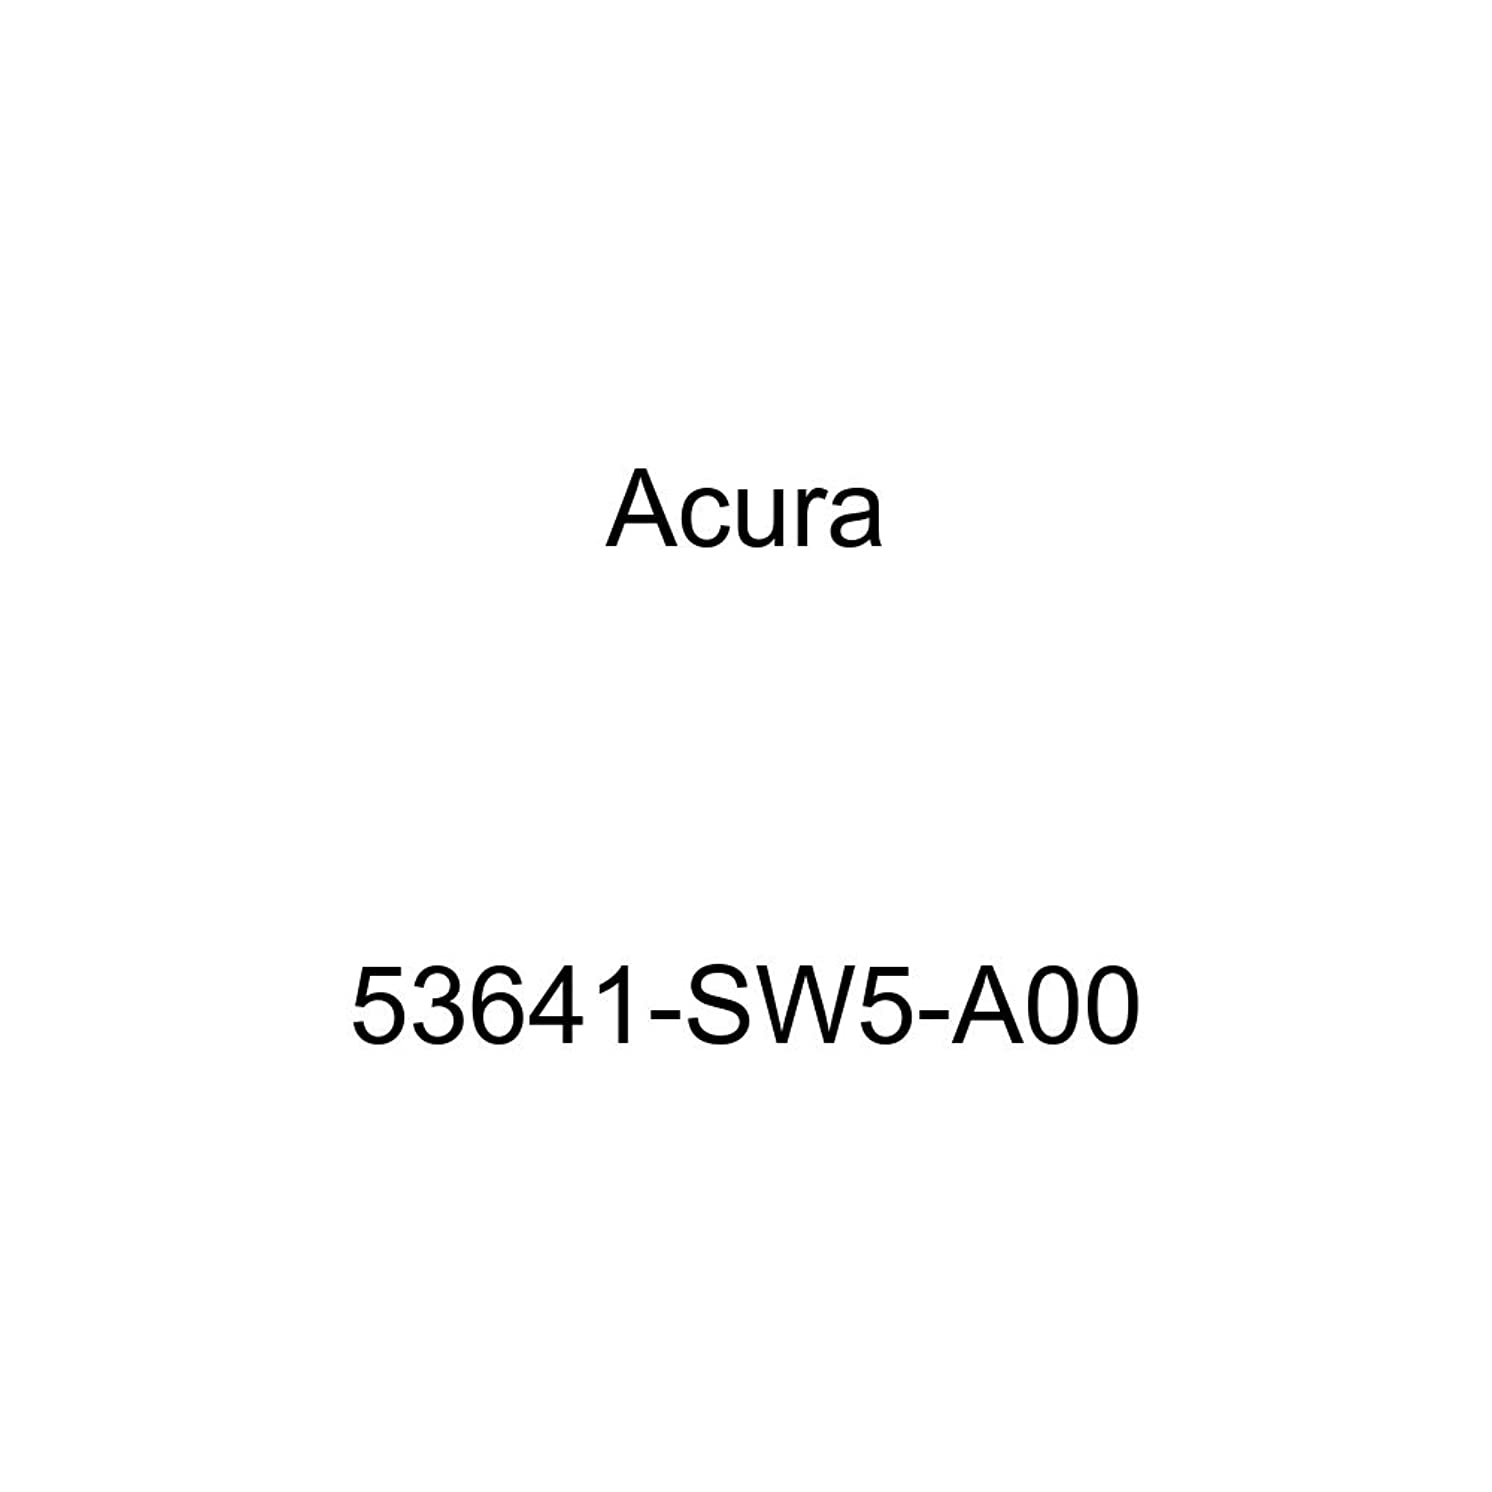 Acura 53641-SW5-A00 Rack and Pinion Control Valve